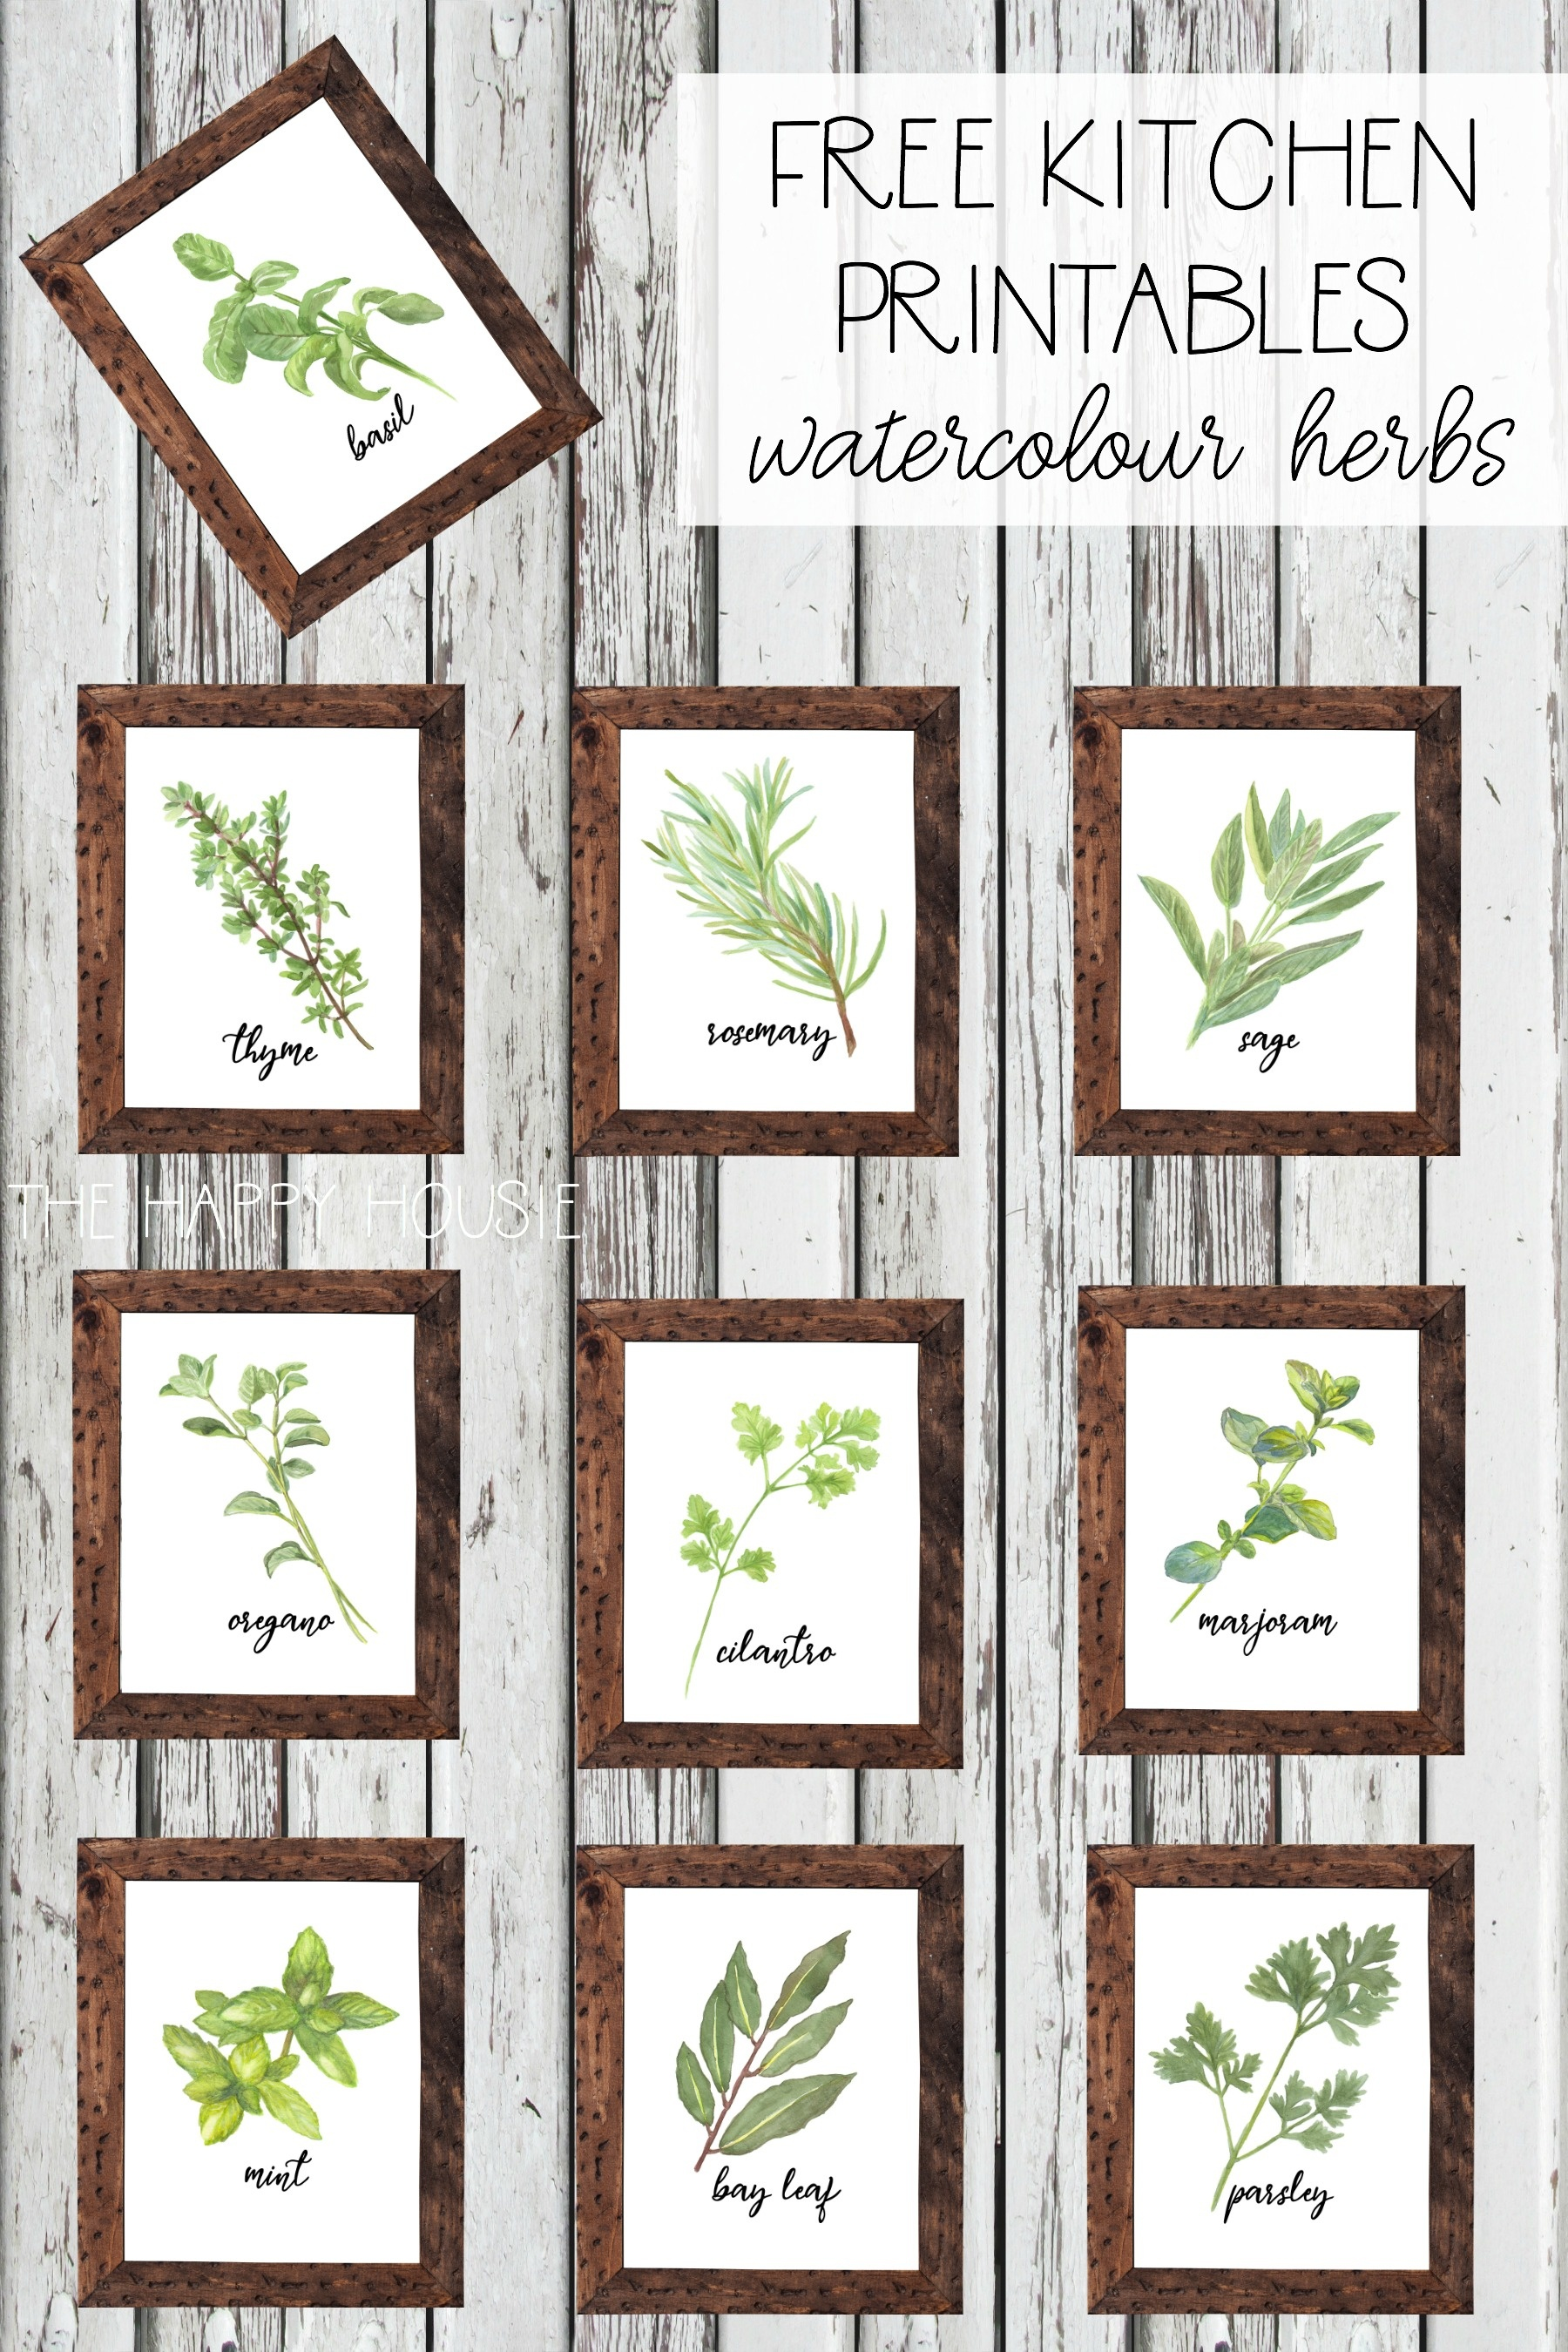 Watercolour Herb Free Kitchen Printables {In 10 Designs!} | The - Free Printable Pictures Of Herbs